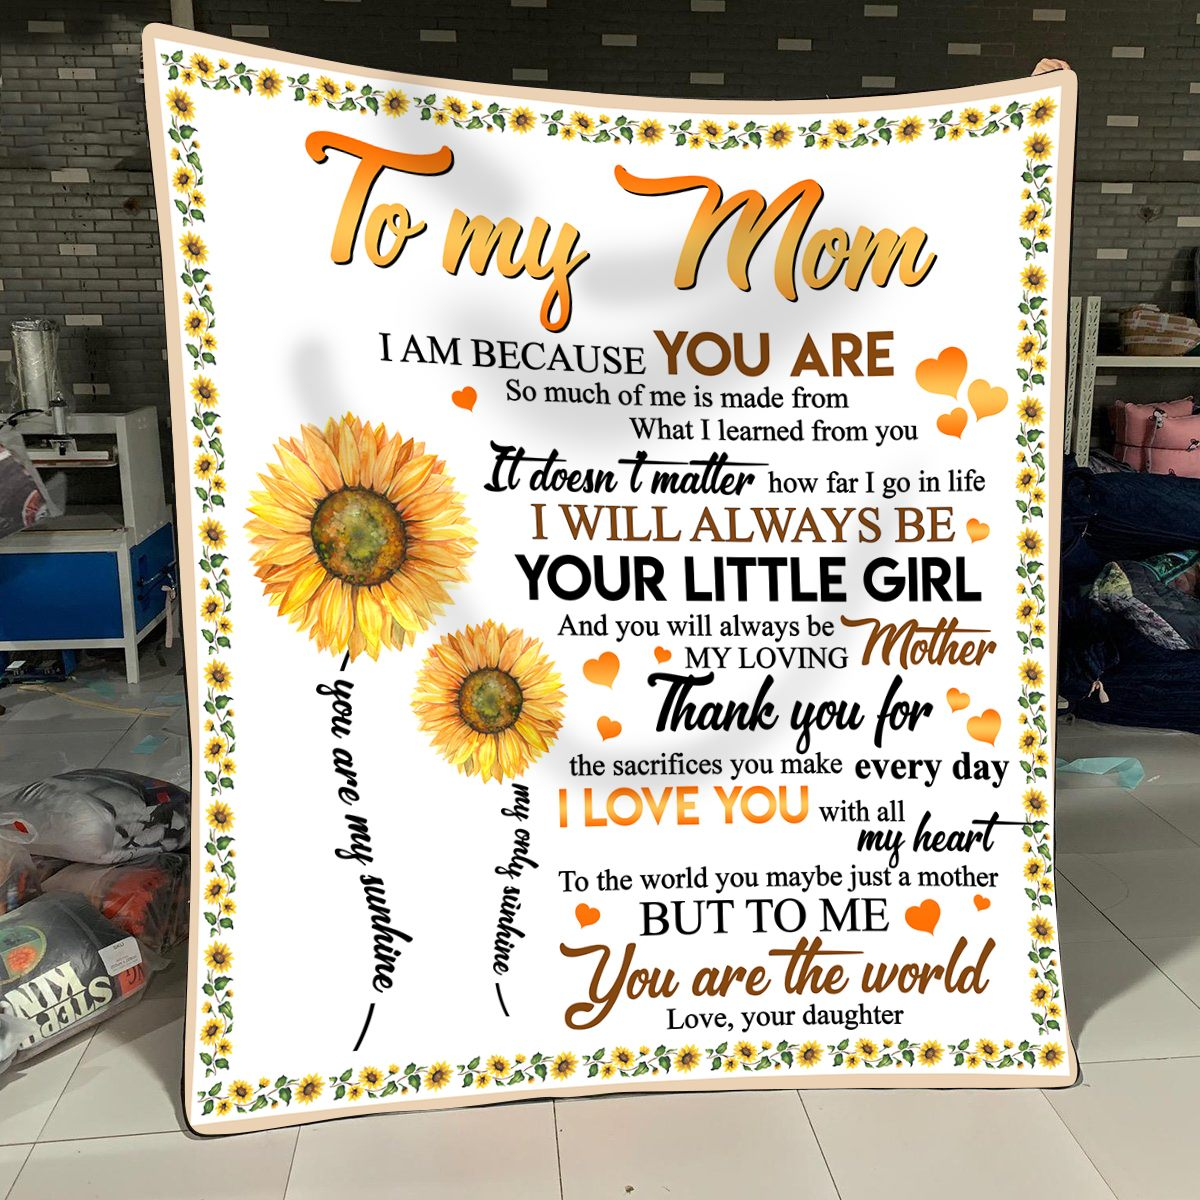 To my mom you are the world to me I love you with all my heart blanket, gift for mom, mother's day gift ideas 2020, birthday gift for her, mother's day gift ideas for mom, mom gifts, best birthday gifts for mom